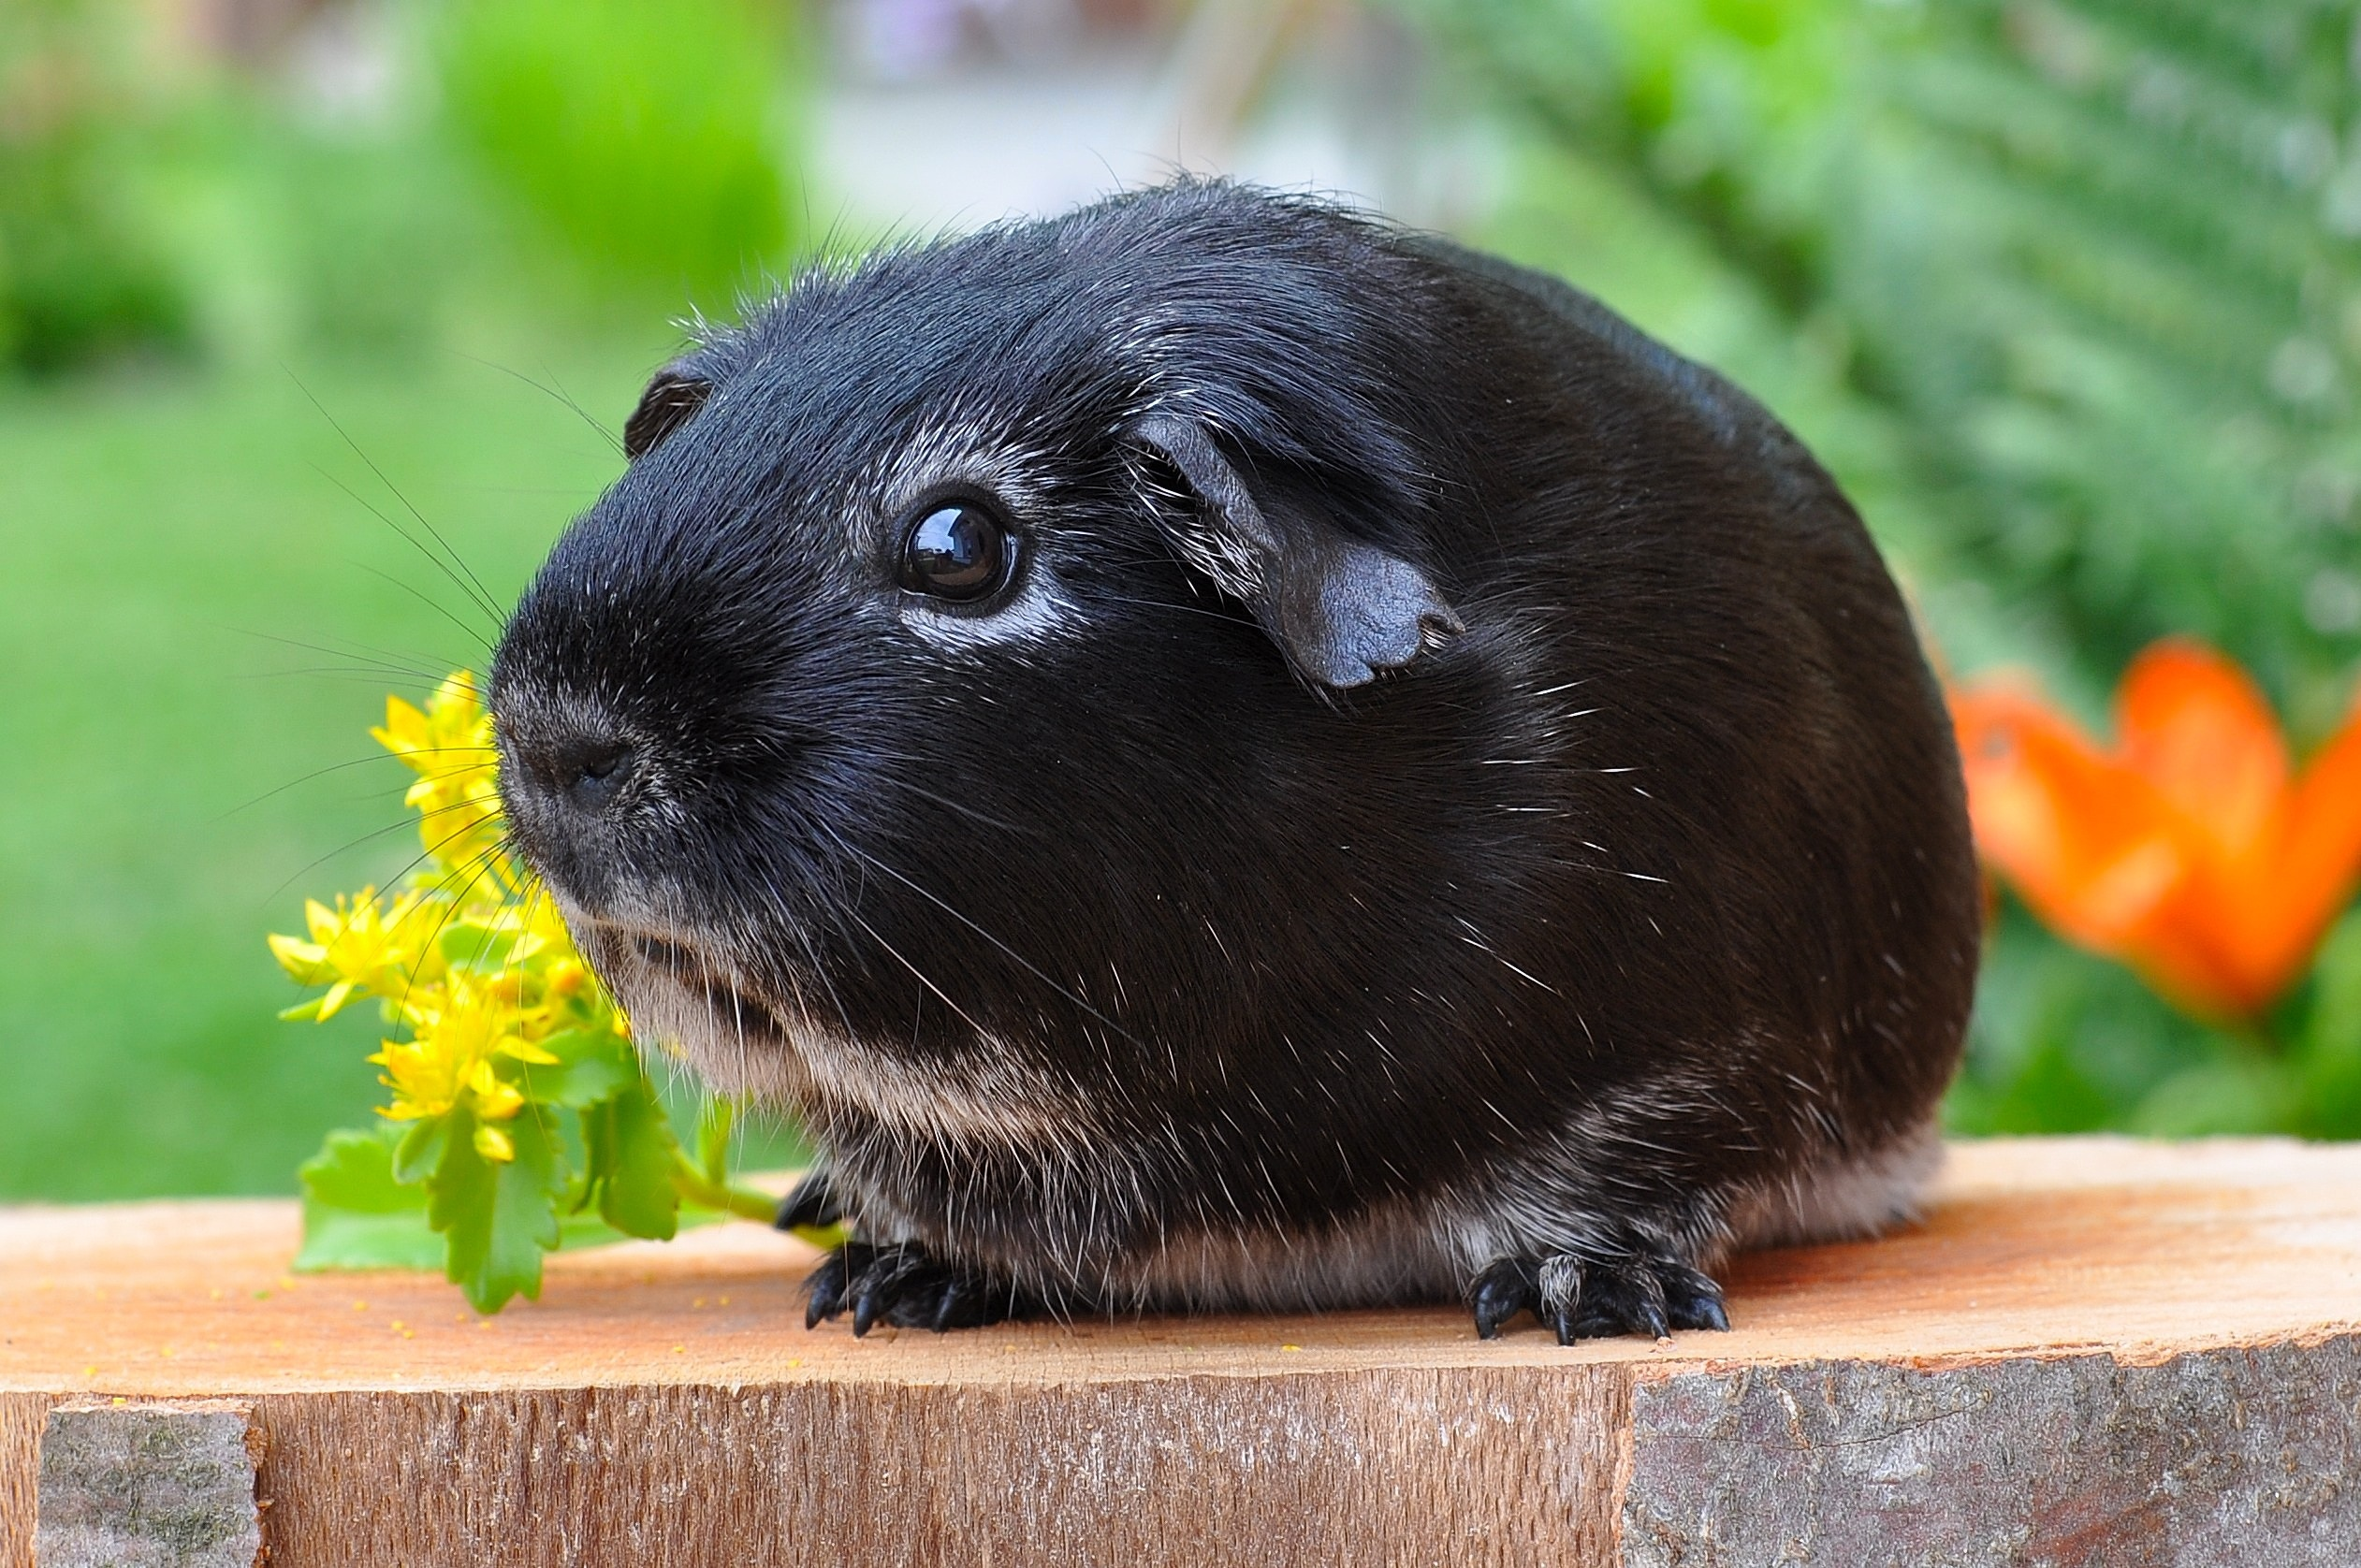 Cute, Guineapig, Loyal, Guinea, Pet, HQ Photo